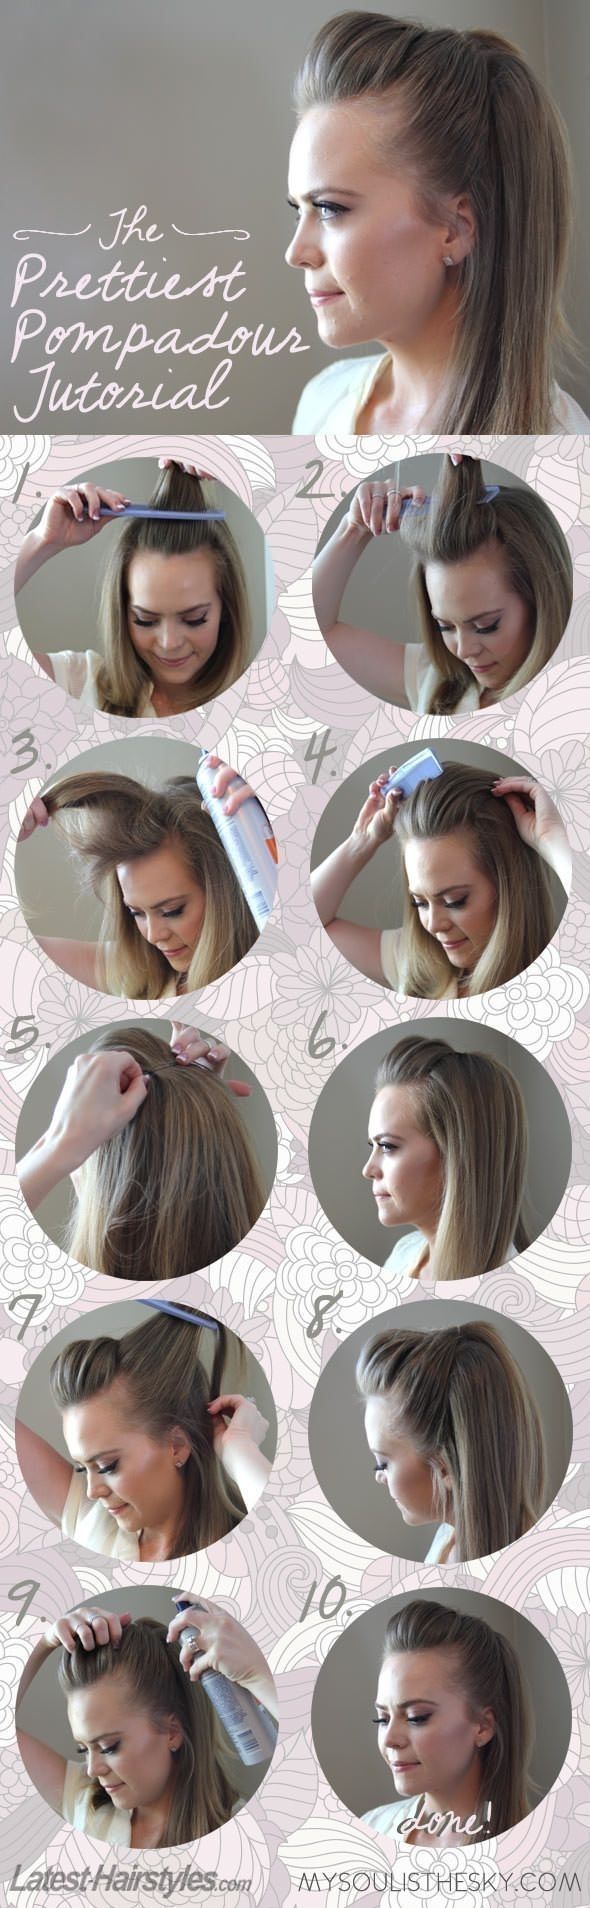 Simple and cute hair tutorial. Perfect for a night out or going into the office.